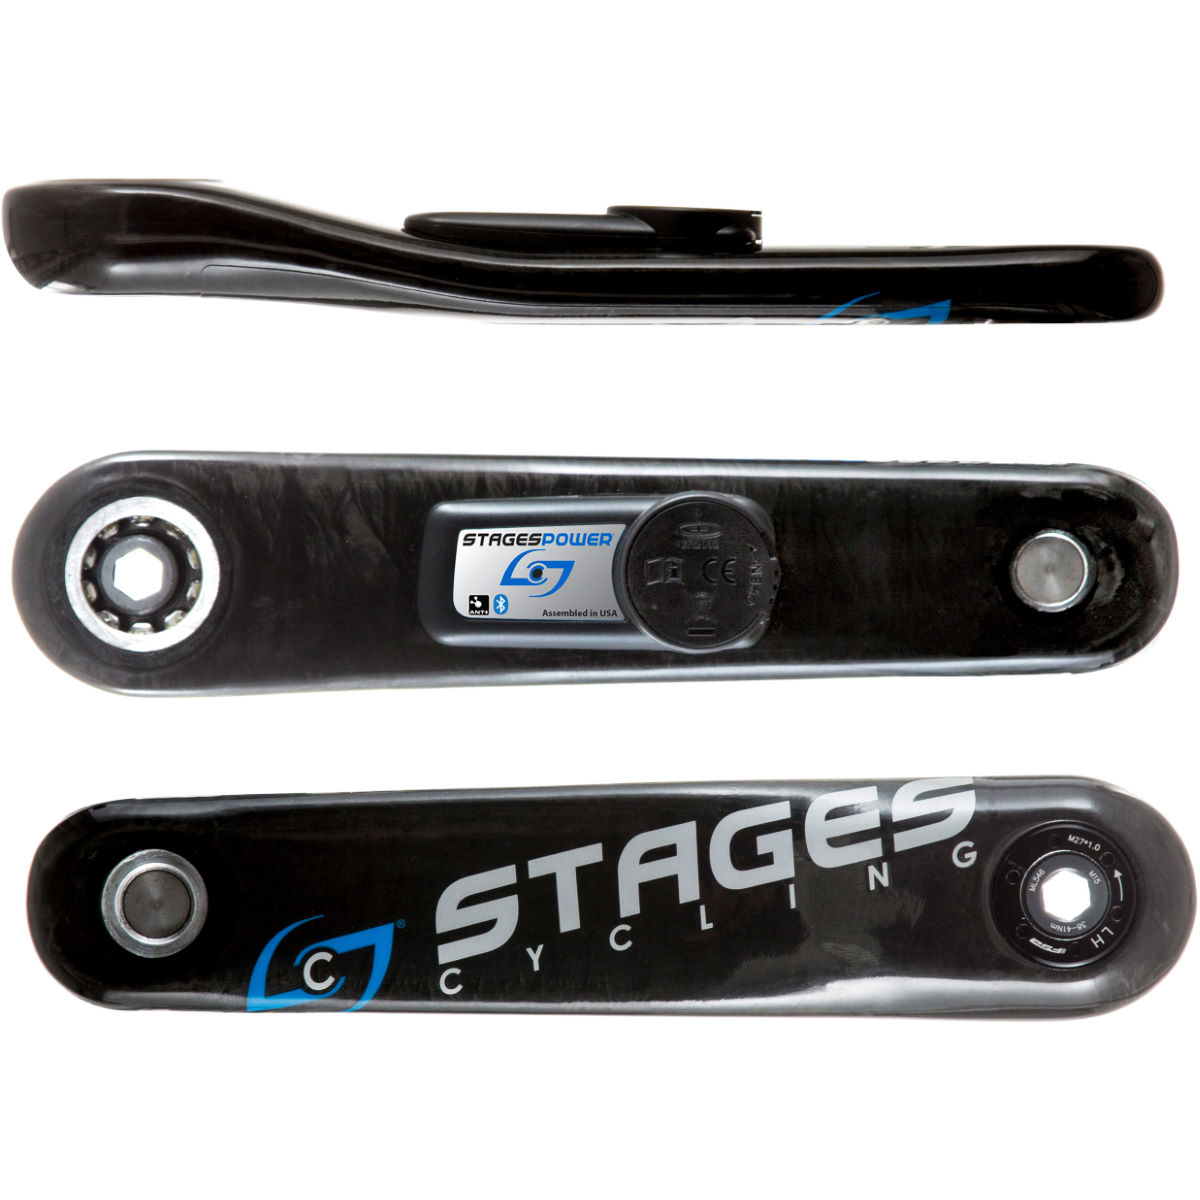 Stages Cycling Power G3 L – Stages Carbon GXP MTB   Power Training